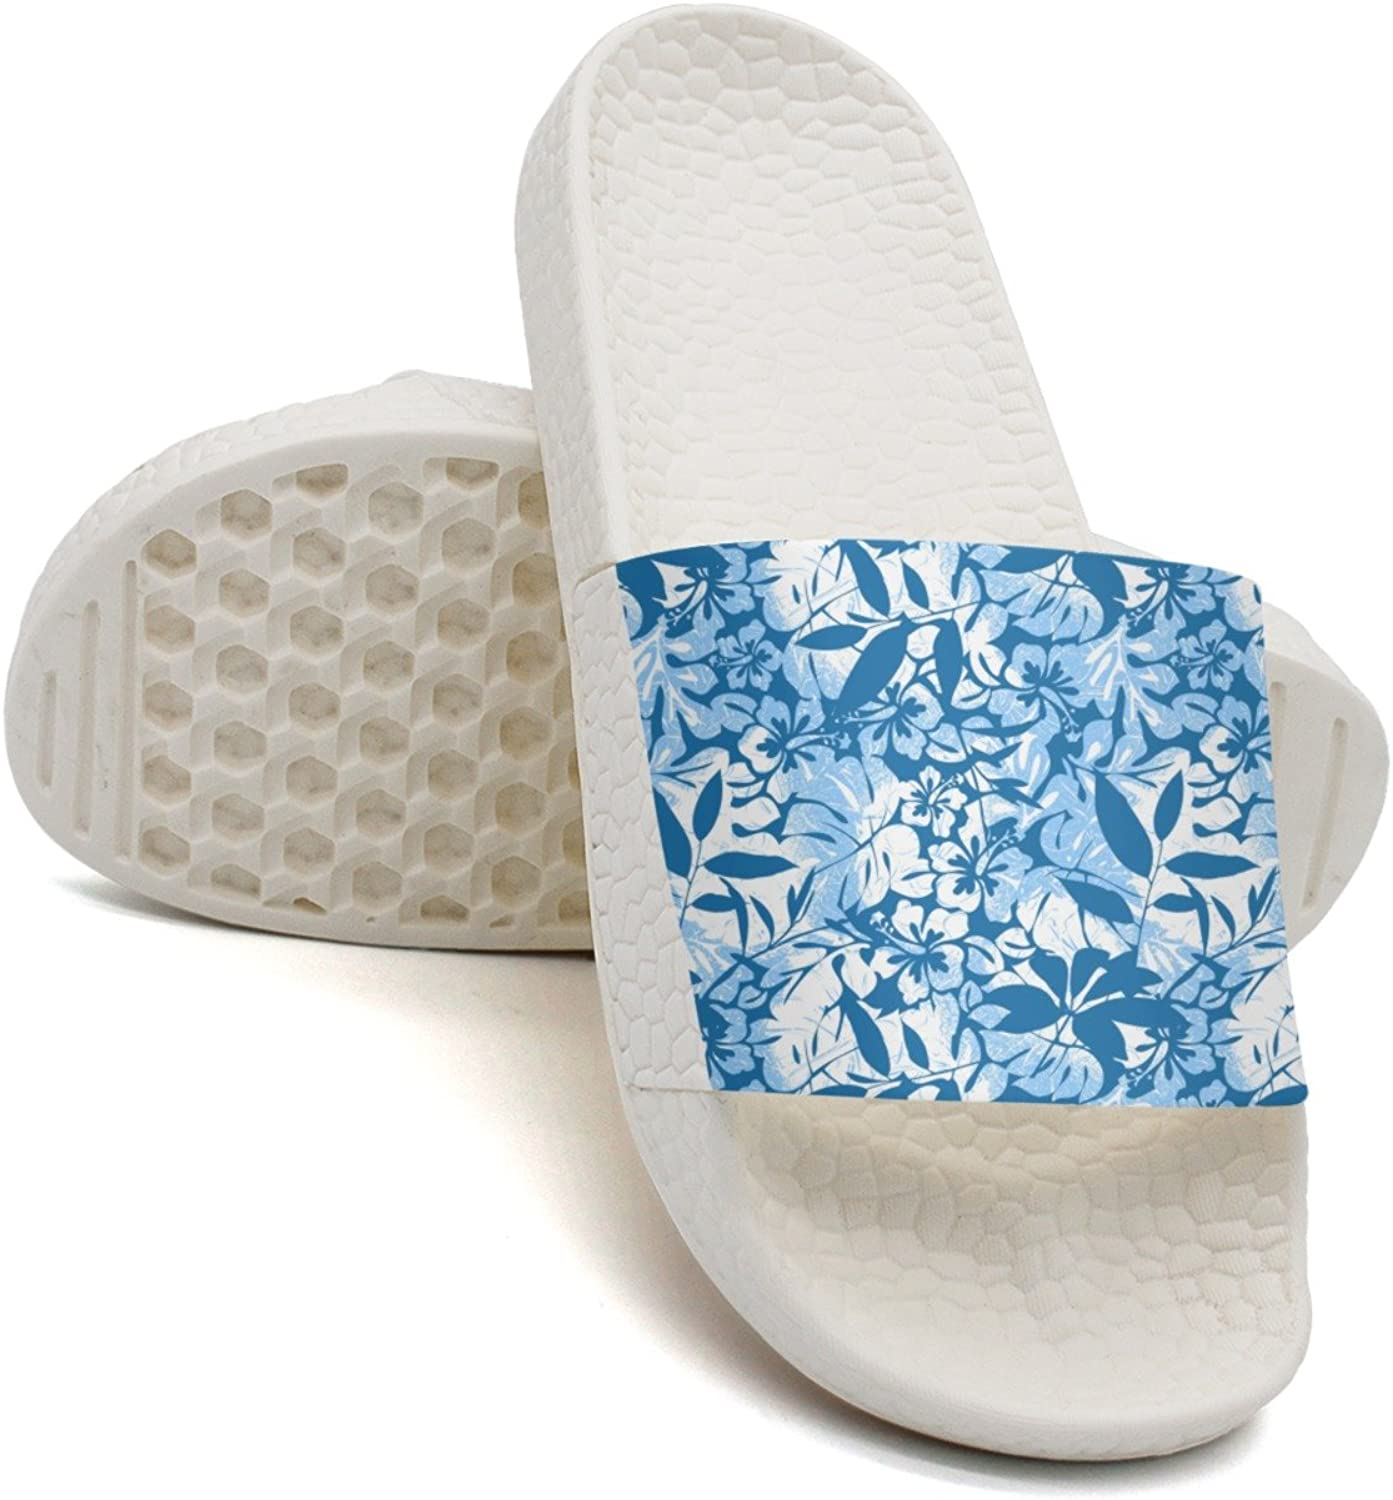 Qiopw rtw Bathroom Shower Non-Slip Sandal bluee Tropical Indoor Slipper shoes for Womens Ladies